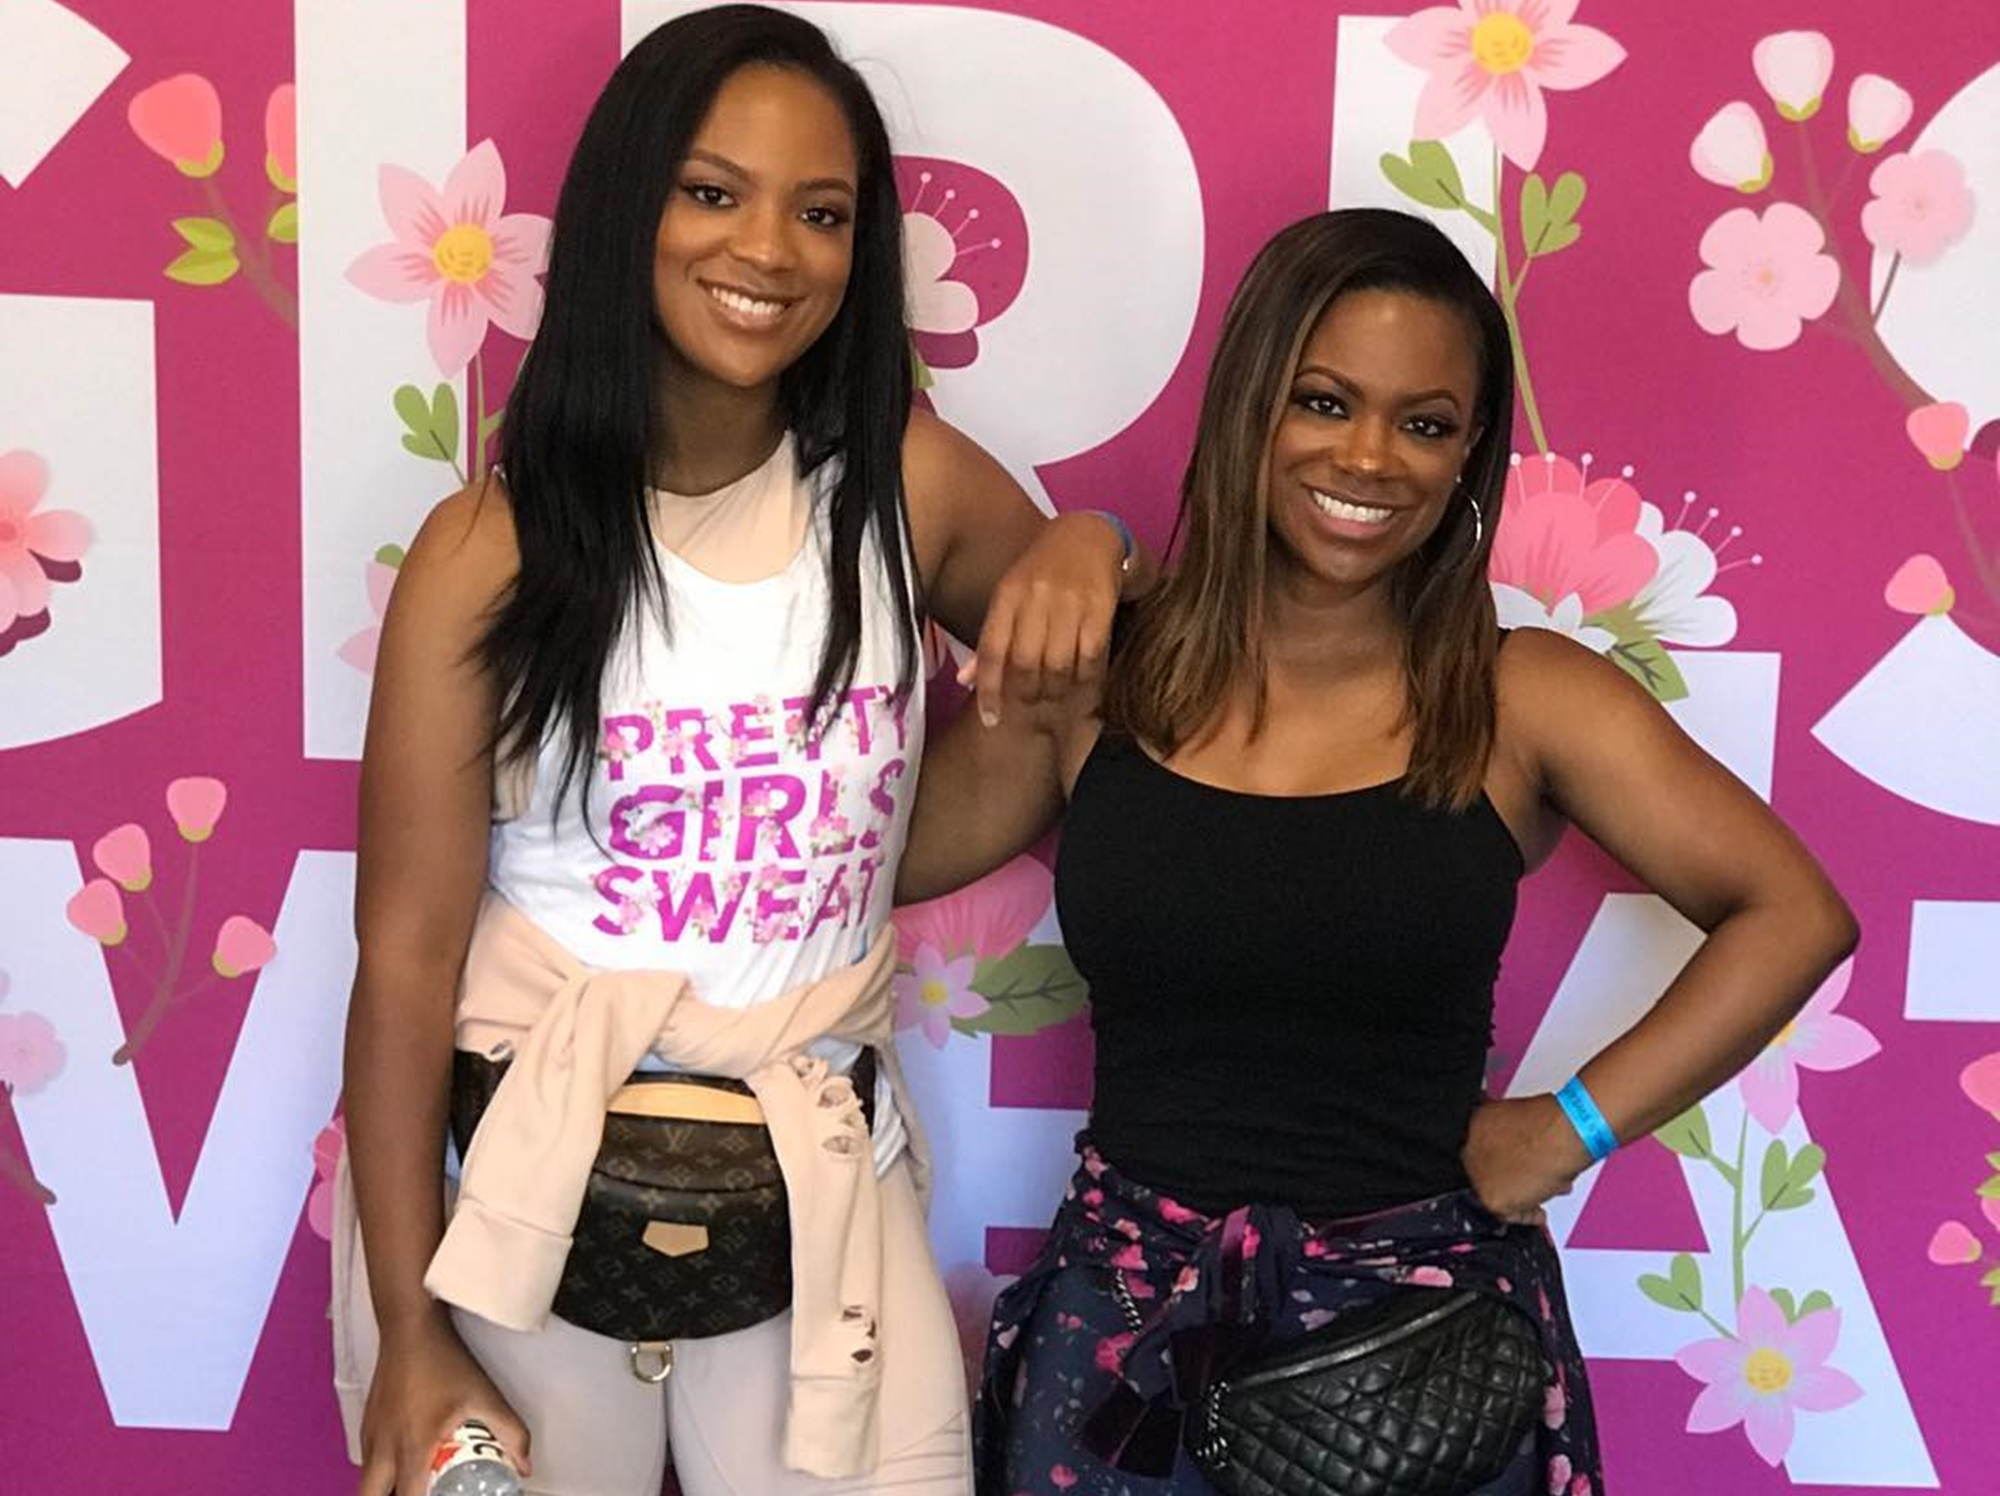 Kandi Burruss' Fans Are Shocked By Her Resemblance To Her Daughter, Riley Burruss In This Photo